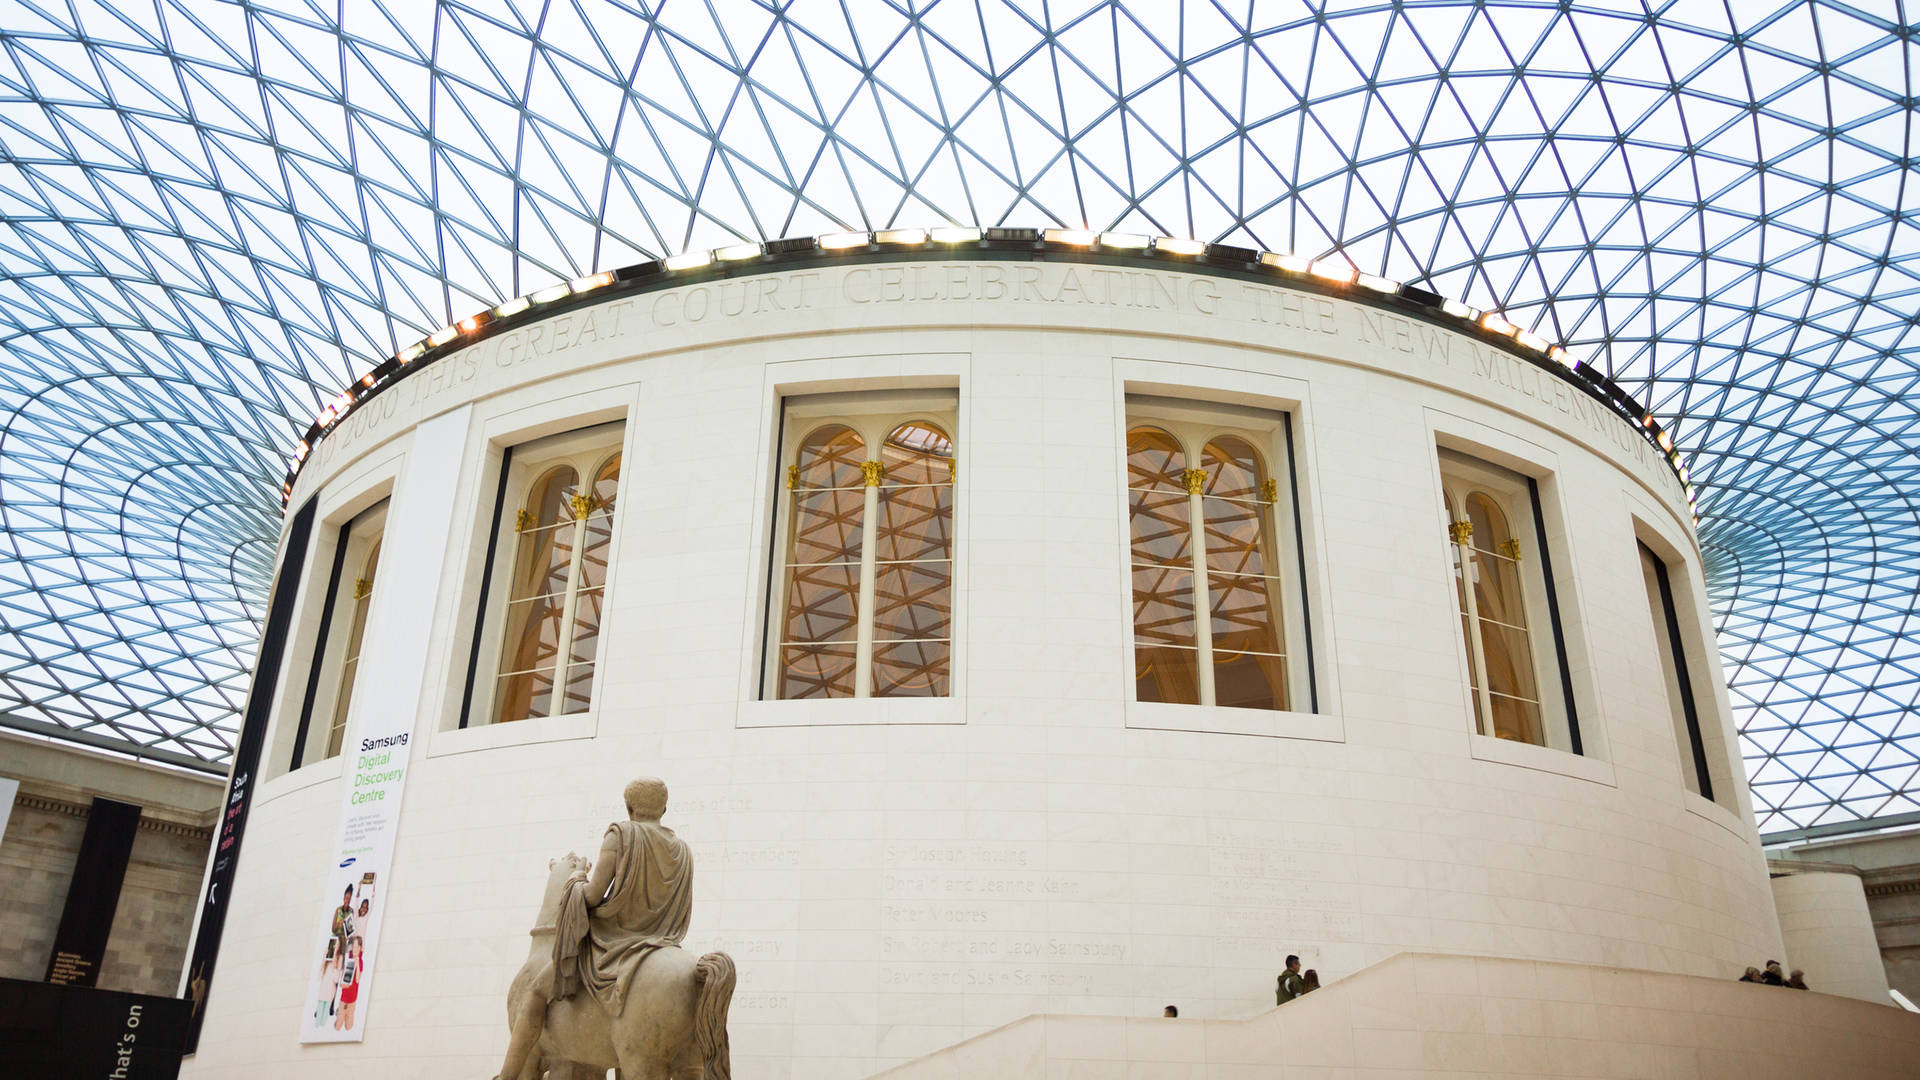 The roof of the British Museum